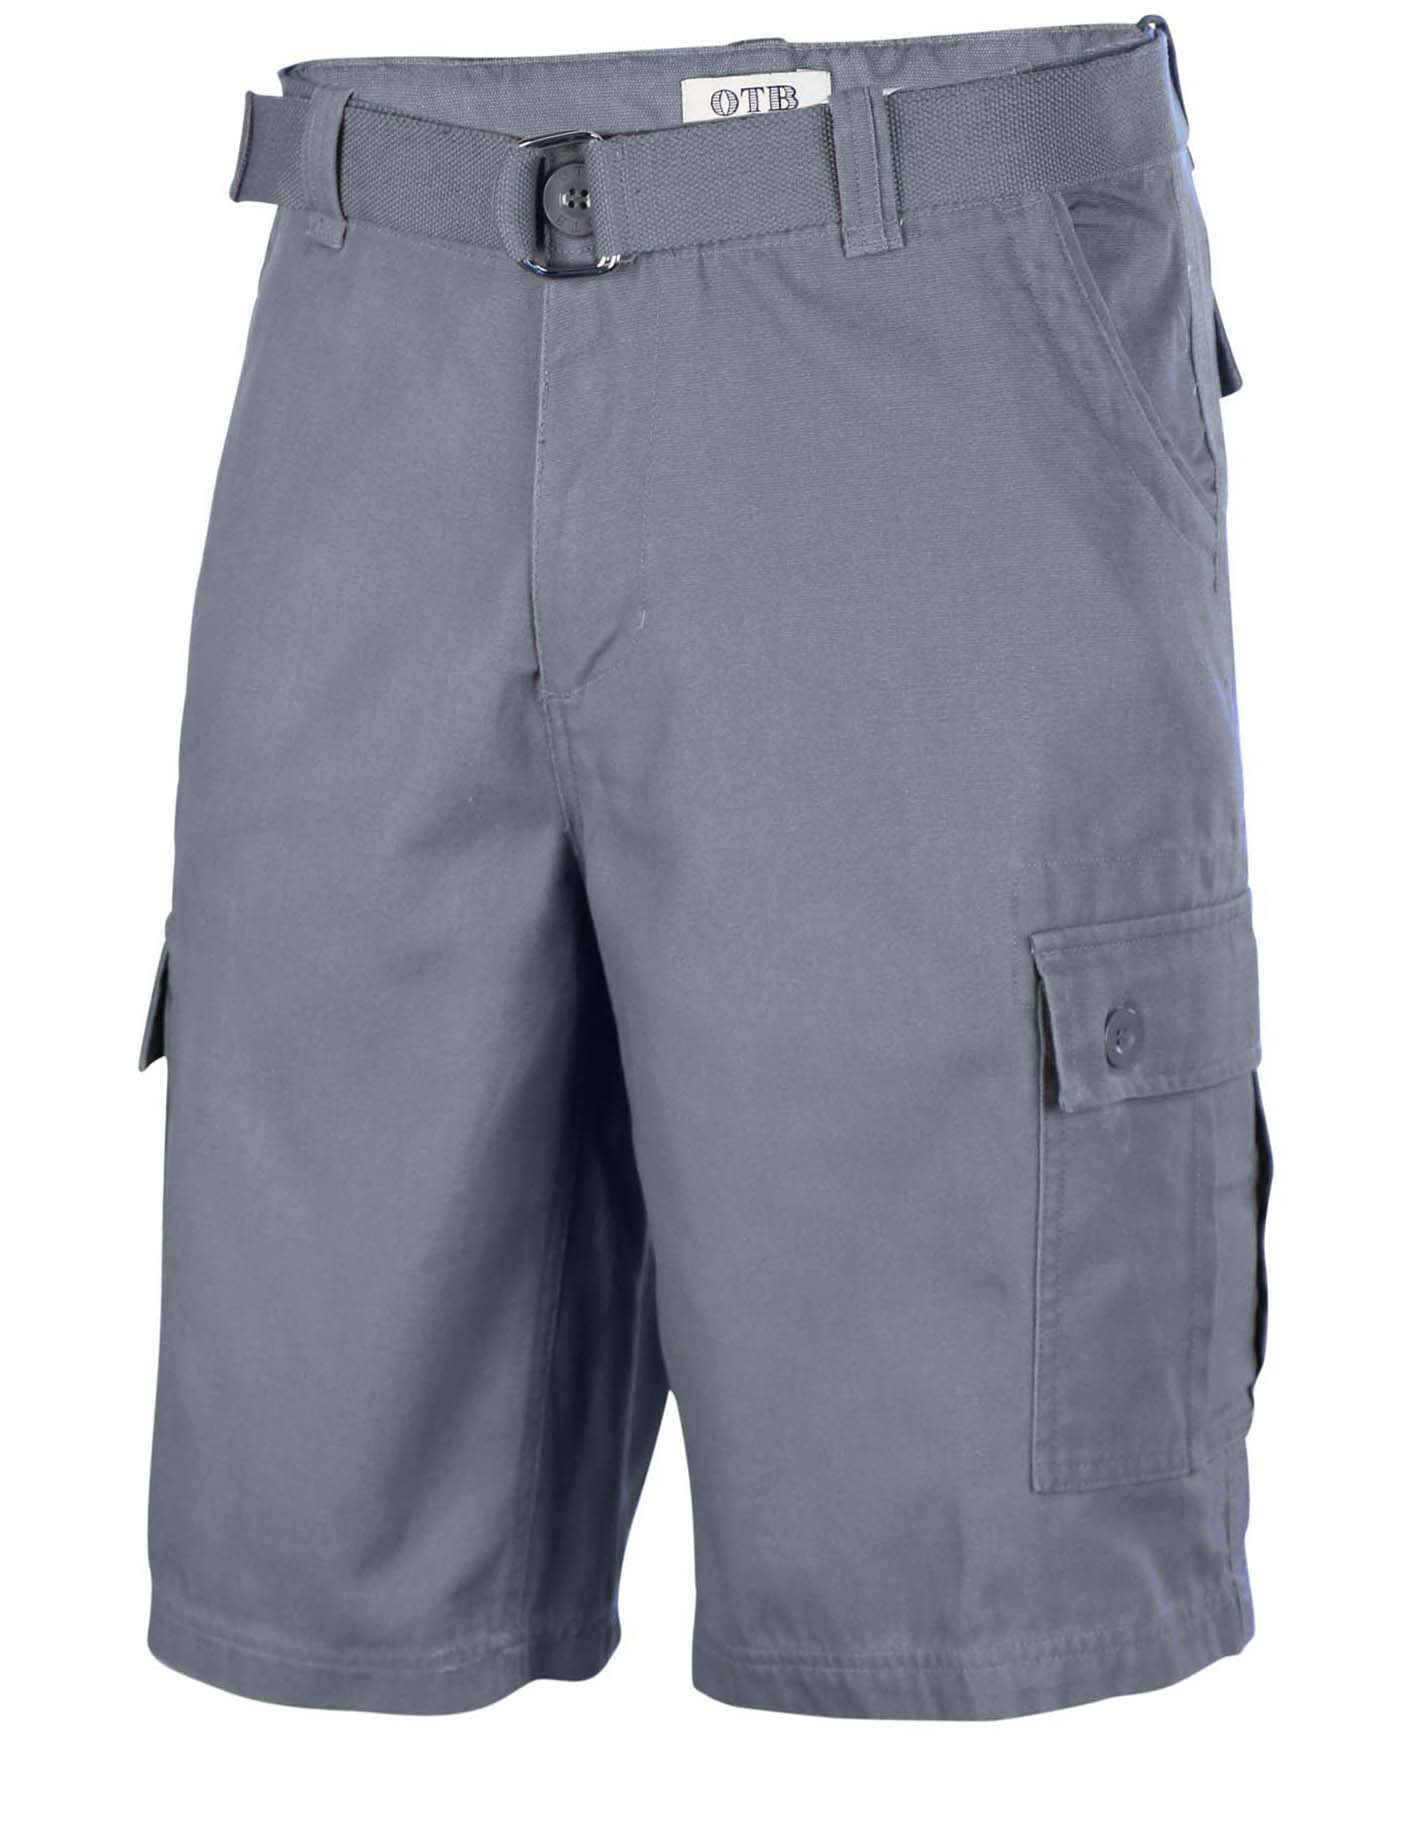 One Tough Brand Men's Cotton Twill Belted Cargo Shorts | eBay